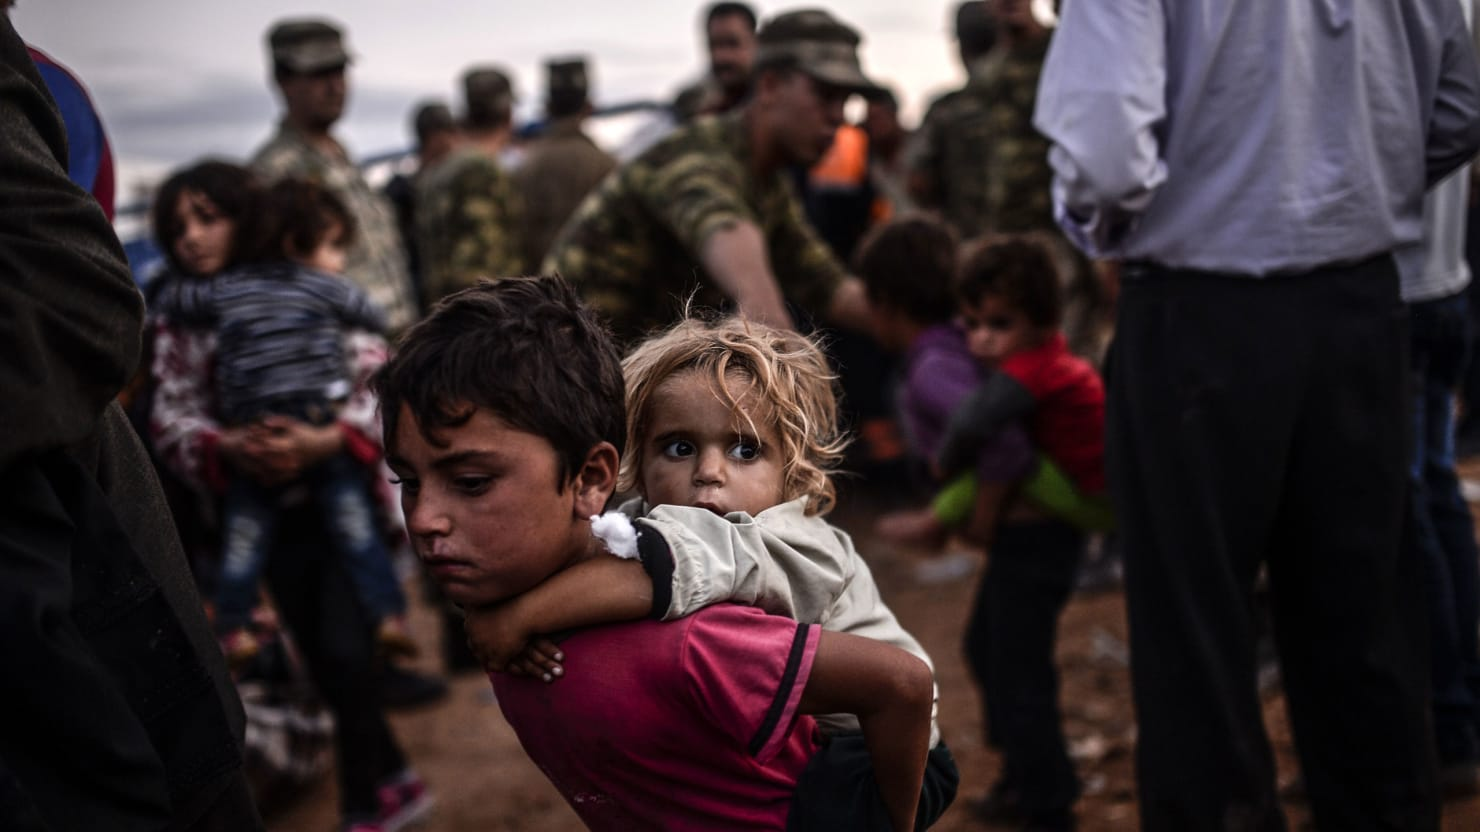 How Congress Can Still Save the Children of Syria